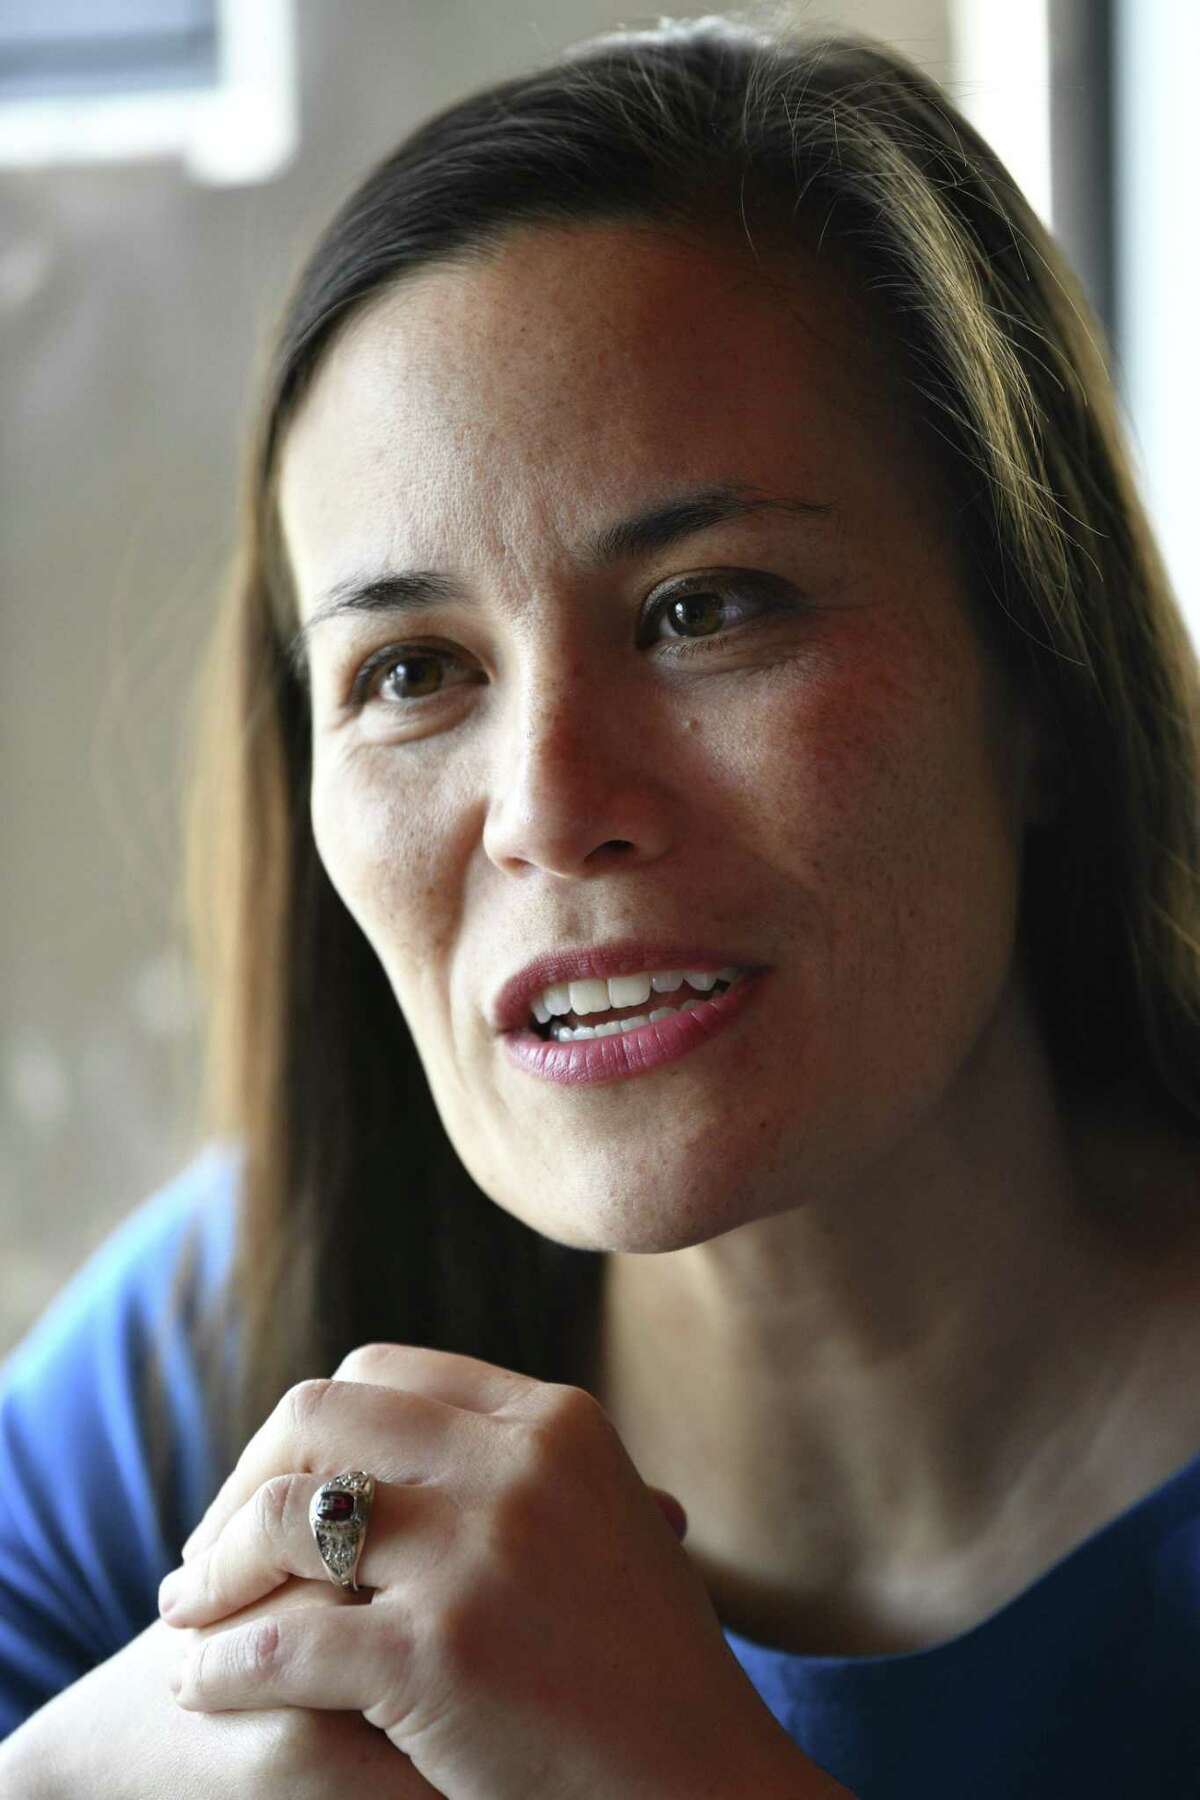 Democrat Gina Ortiz Jones, a former Air Force intelligence officer and Iraq War veteran, plans to run again against U.S. Rep. Will Hurd, R-San Antonio, in 2020. She was narrowly defeated in 2018 by Hurd, who is in his third term as a U.S. congressman from the 23rd Congressional District race.